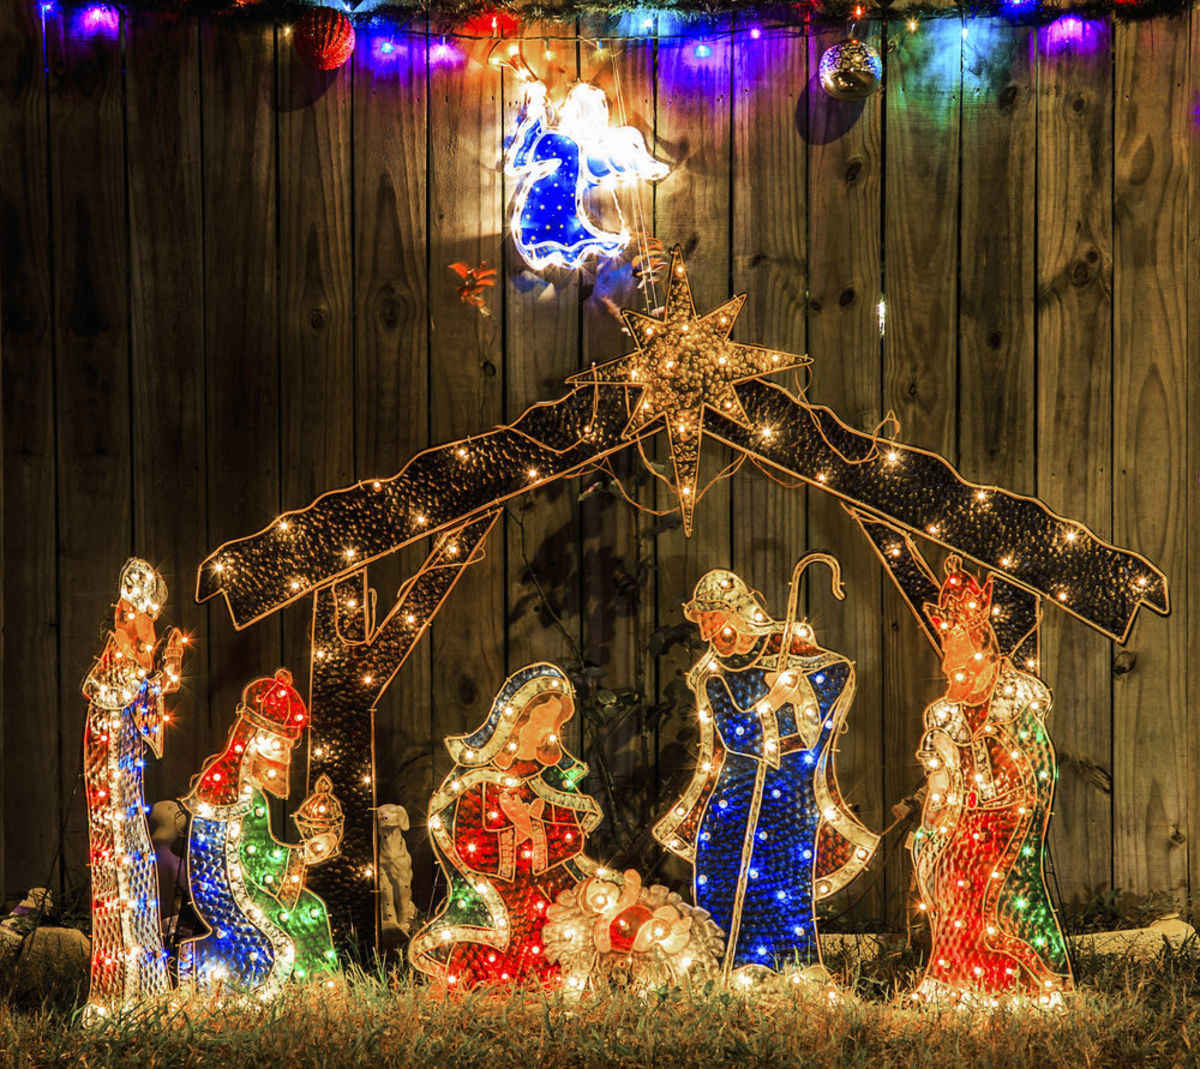 angelus news - When To Start Decorating For Christmas